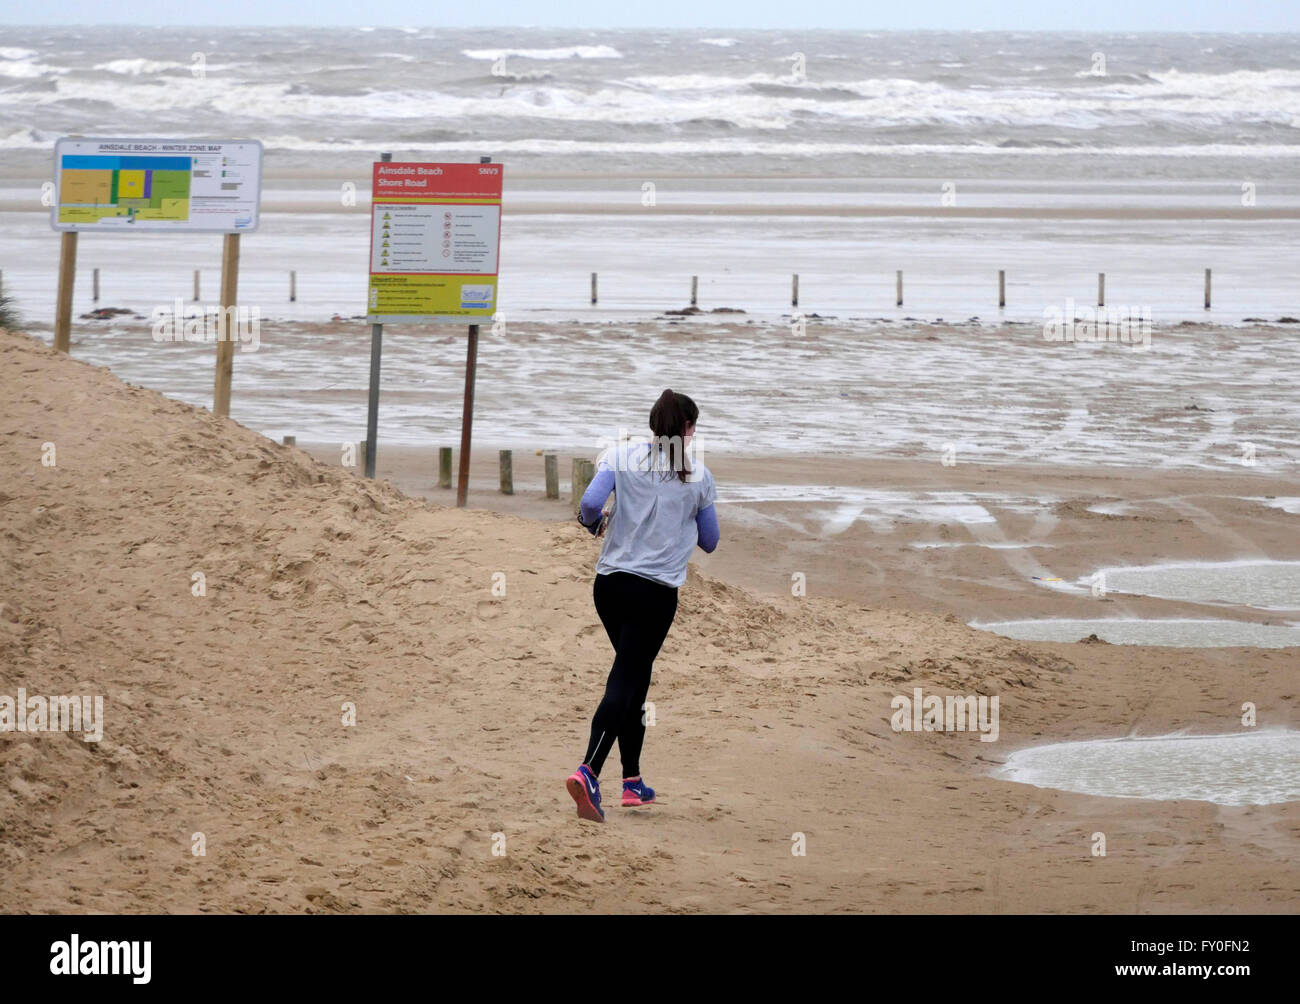 UK Weather Cold changeable  Spring day Ainsdale Beach Merseyside.6 April 2016. Cold, windy changeable  conditions - Stock Image